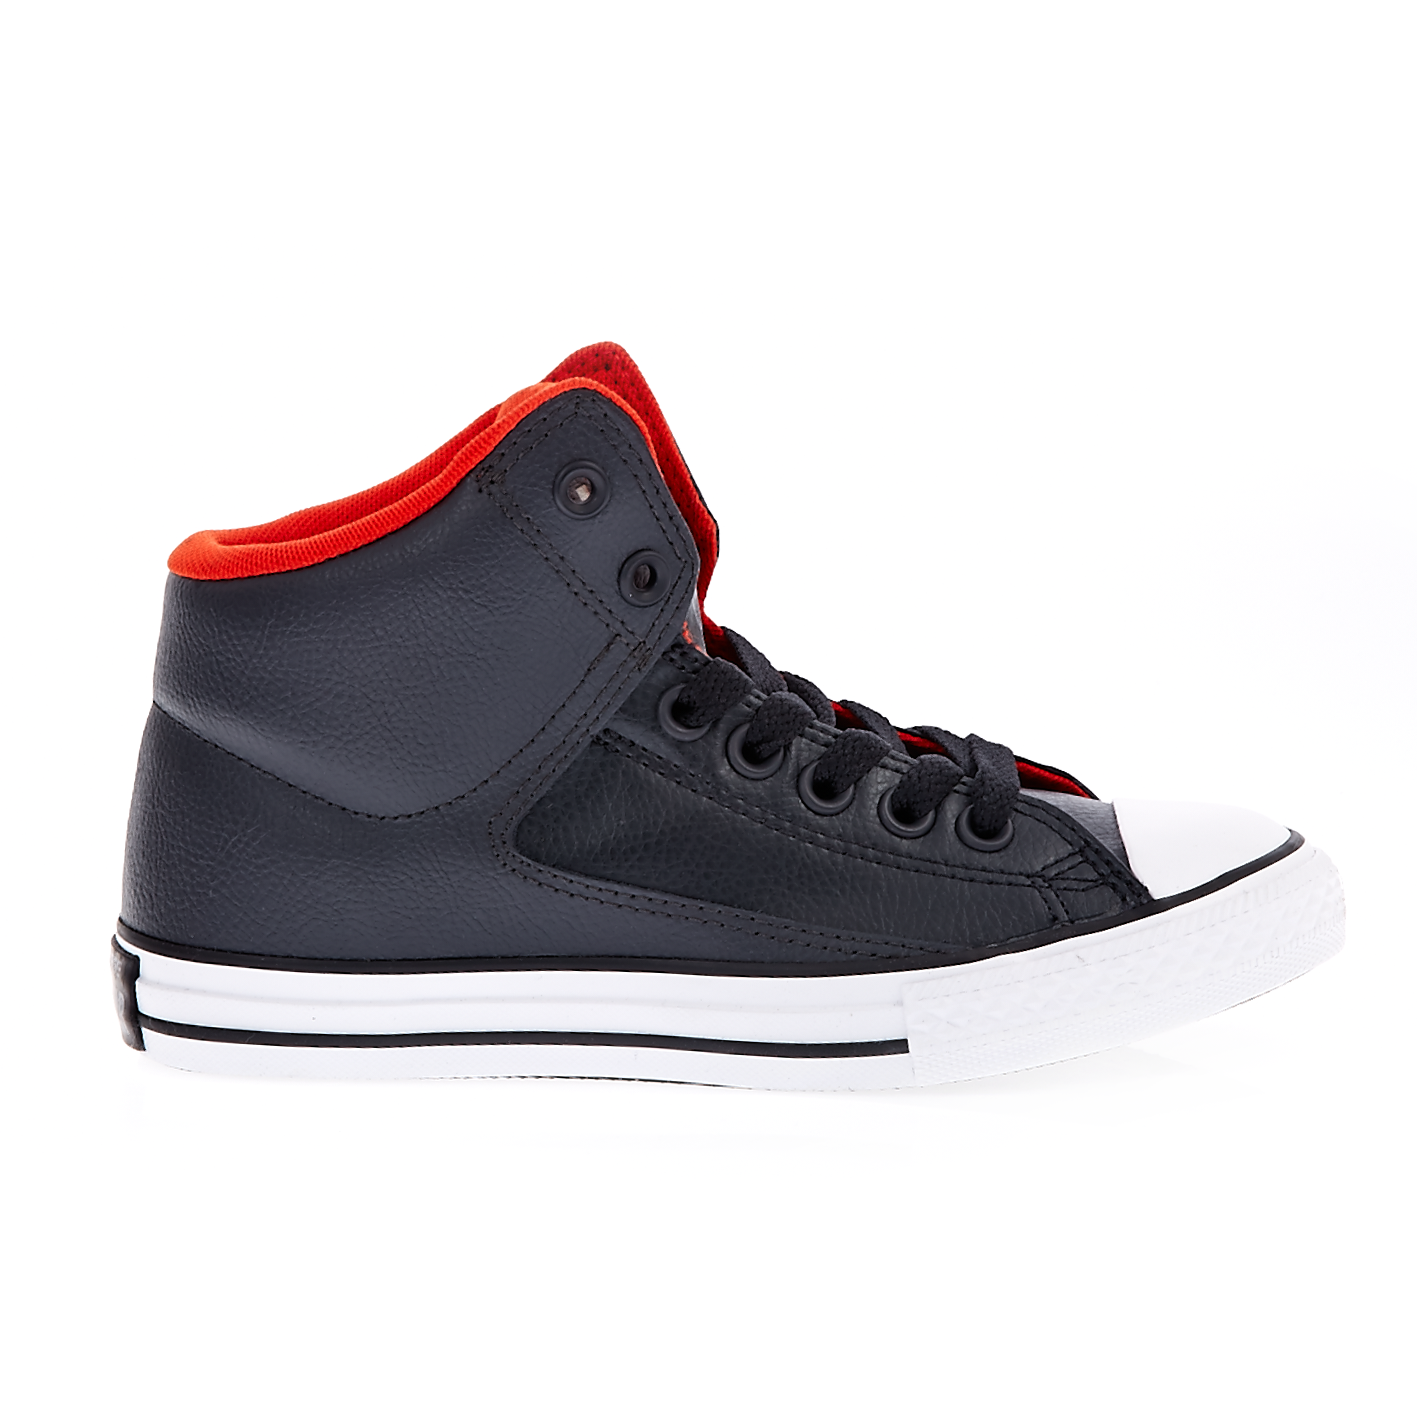 CONVERSE - Παιδικά παπούτσια Chuck Taylor All Star High Str μαύρα